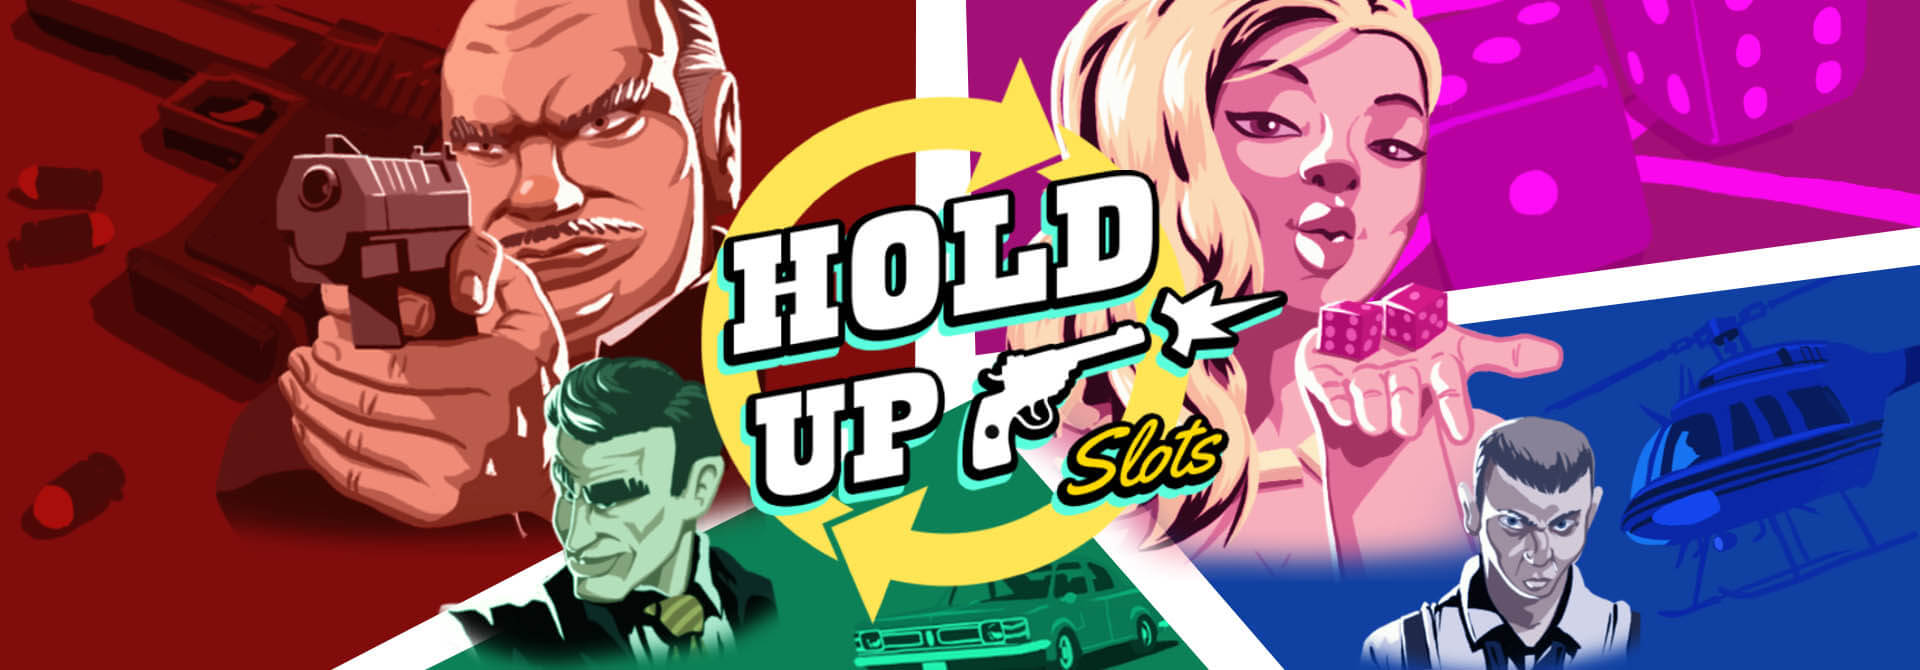 NEW GAME: Hands in the air – this is Hold Up Slots!